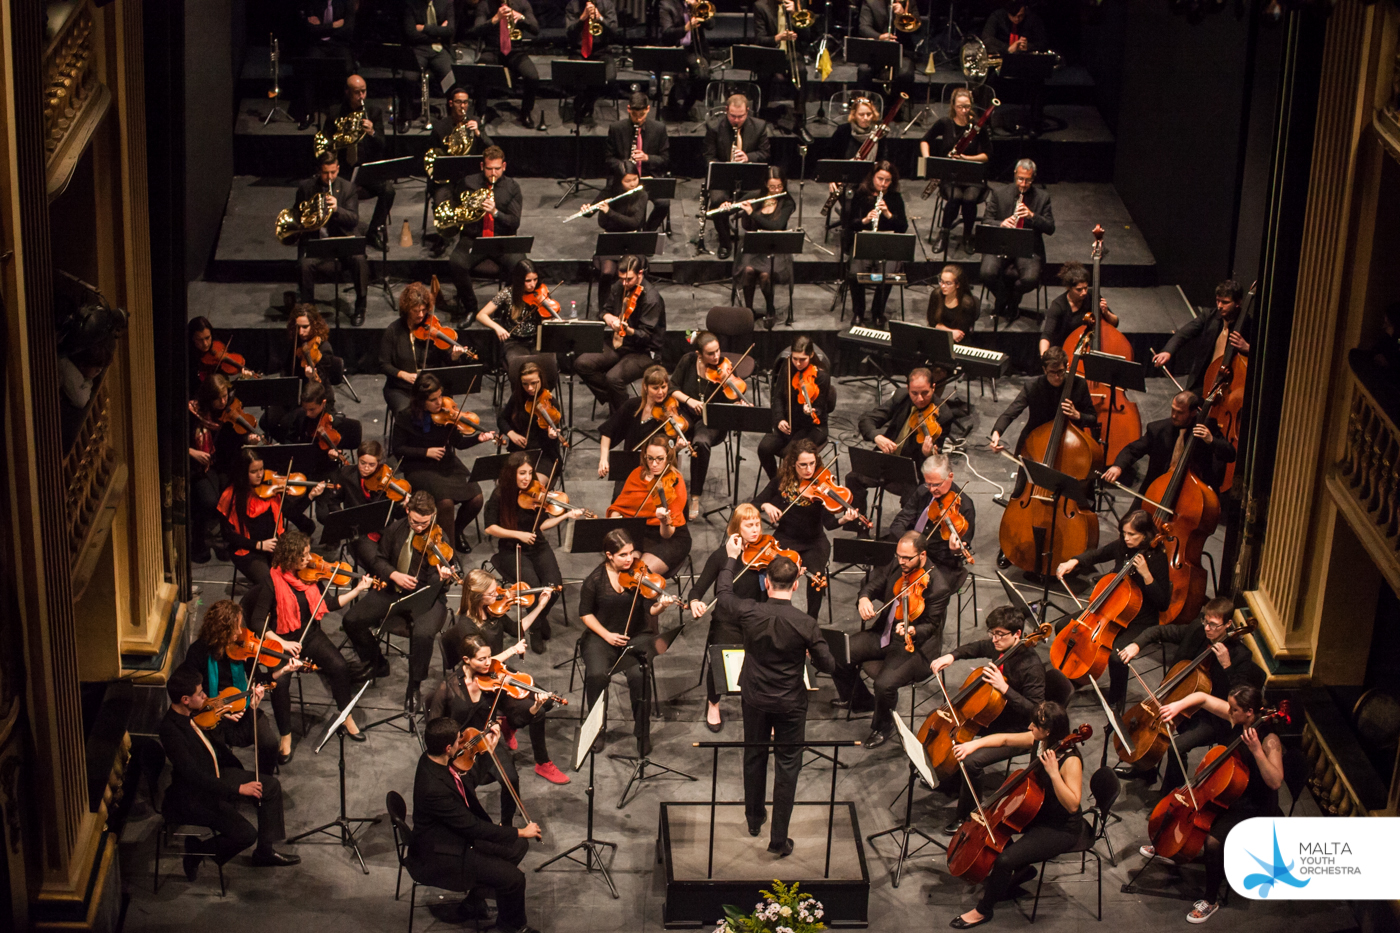 Malta Youth Orchestra Concert